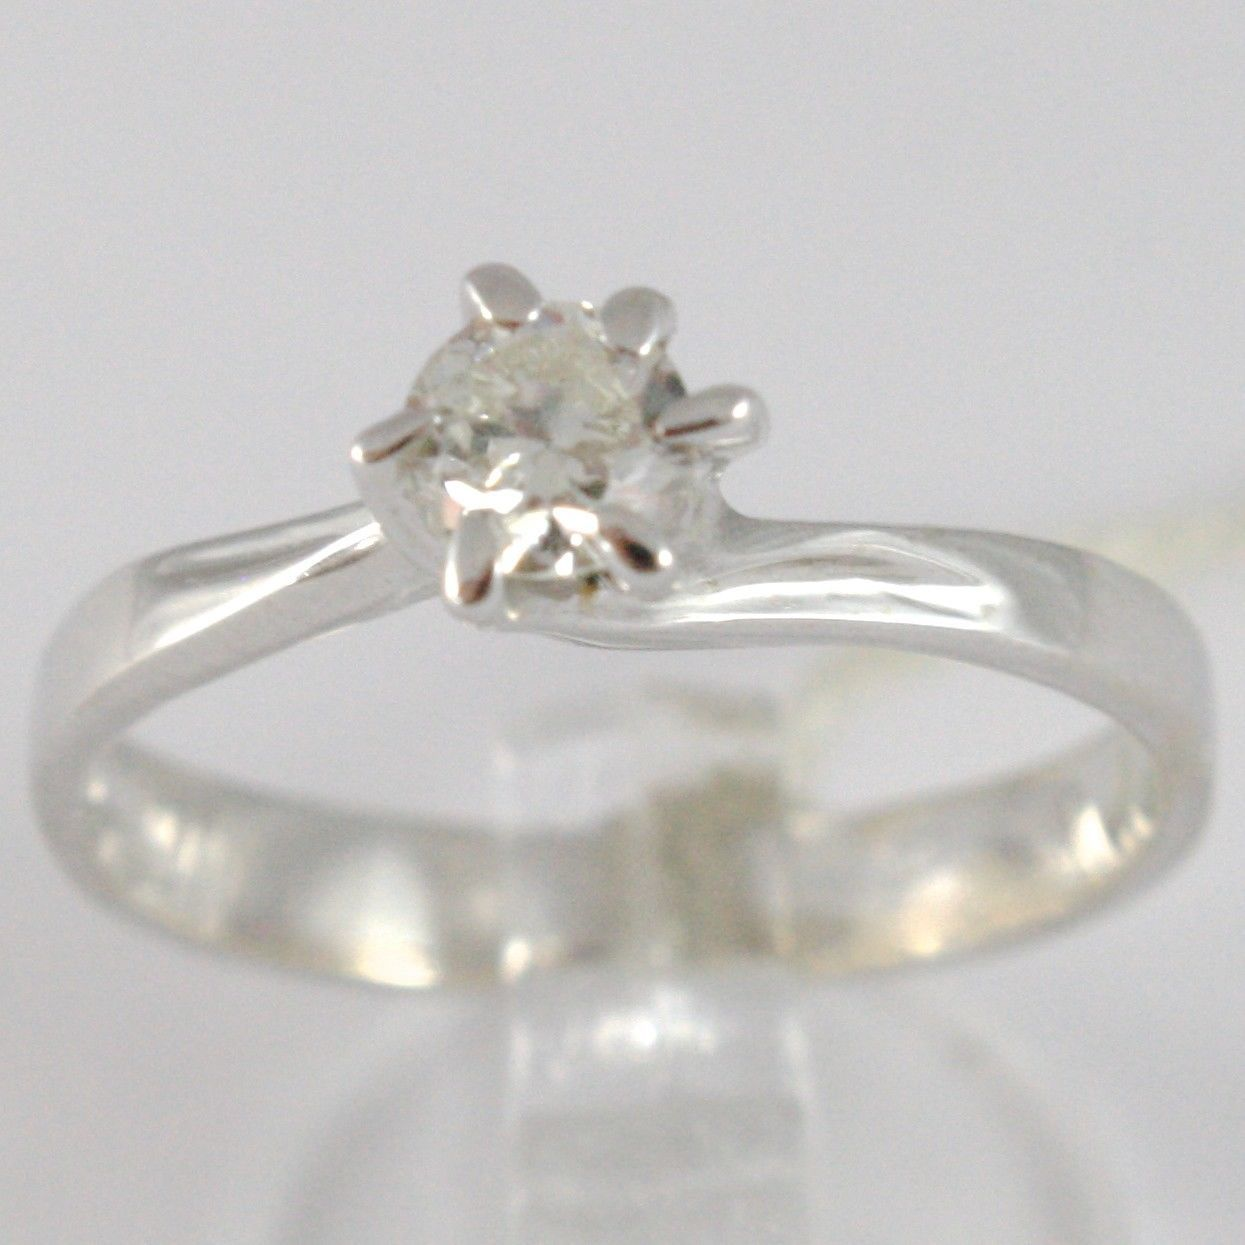 WHITE GOLD RING 750 18K, SOLITAIRE, STEM CRISS CROSSED, DIAMOND CARAT 0.32